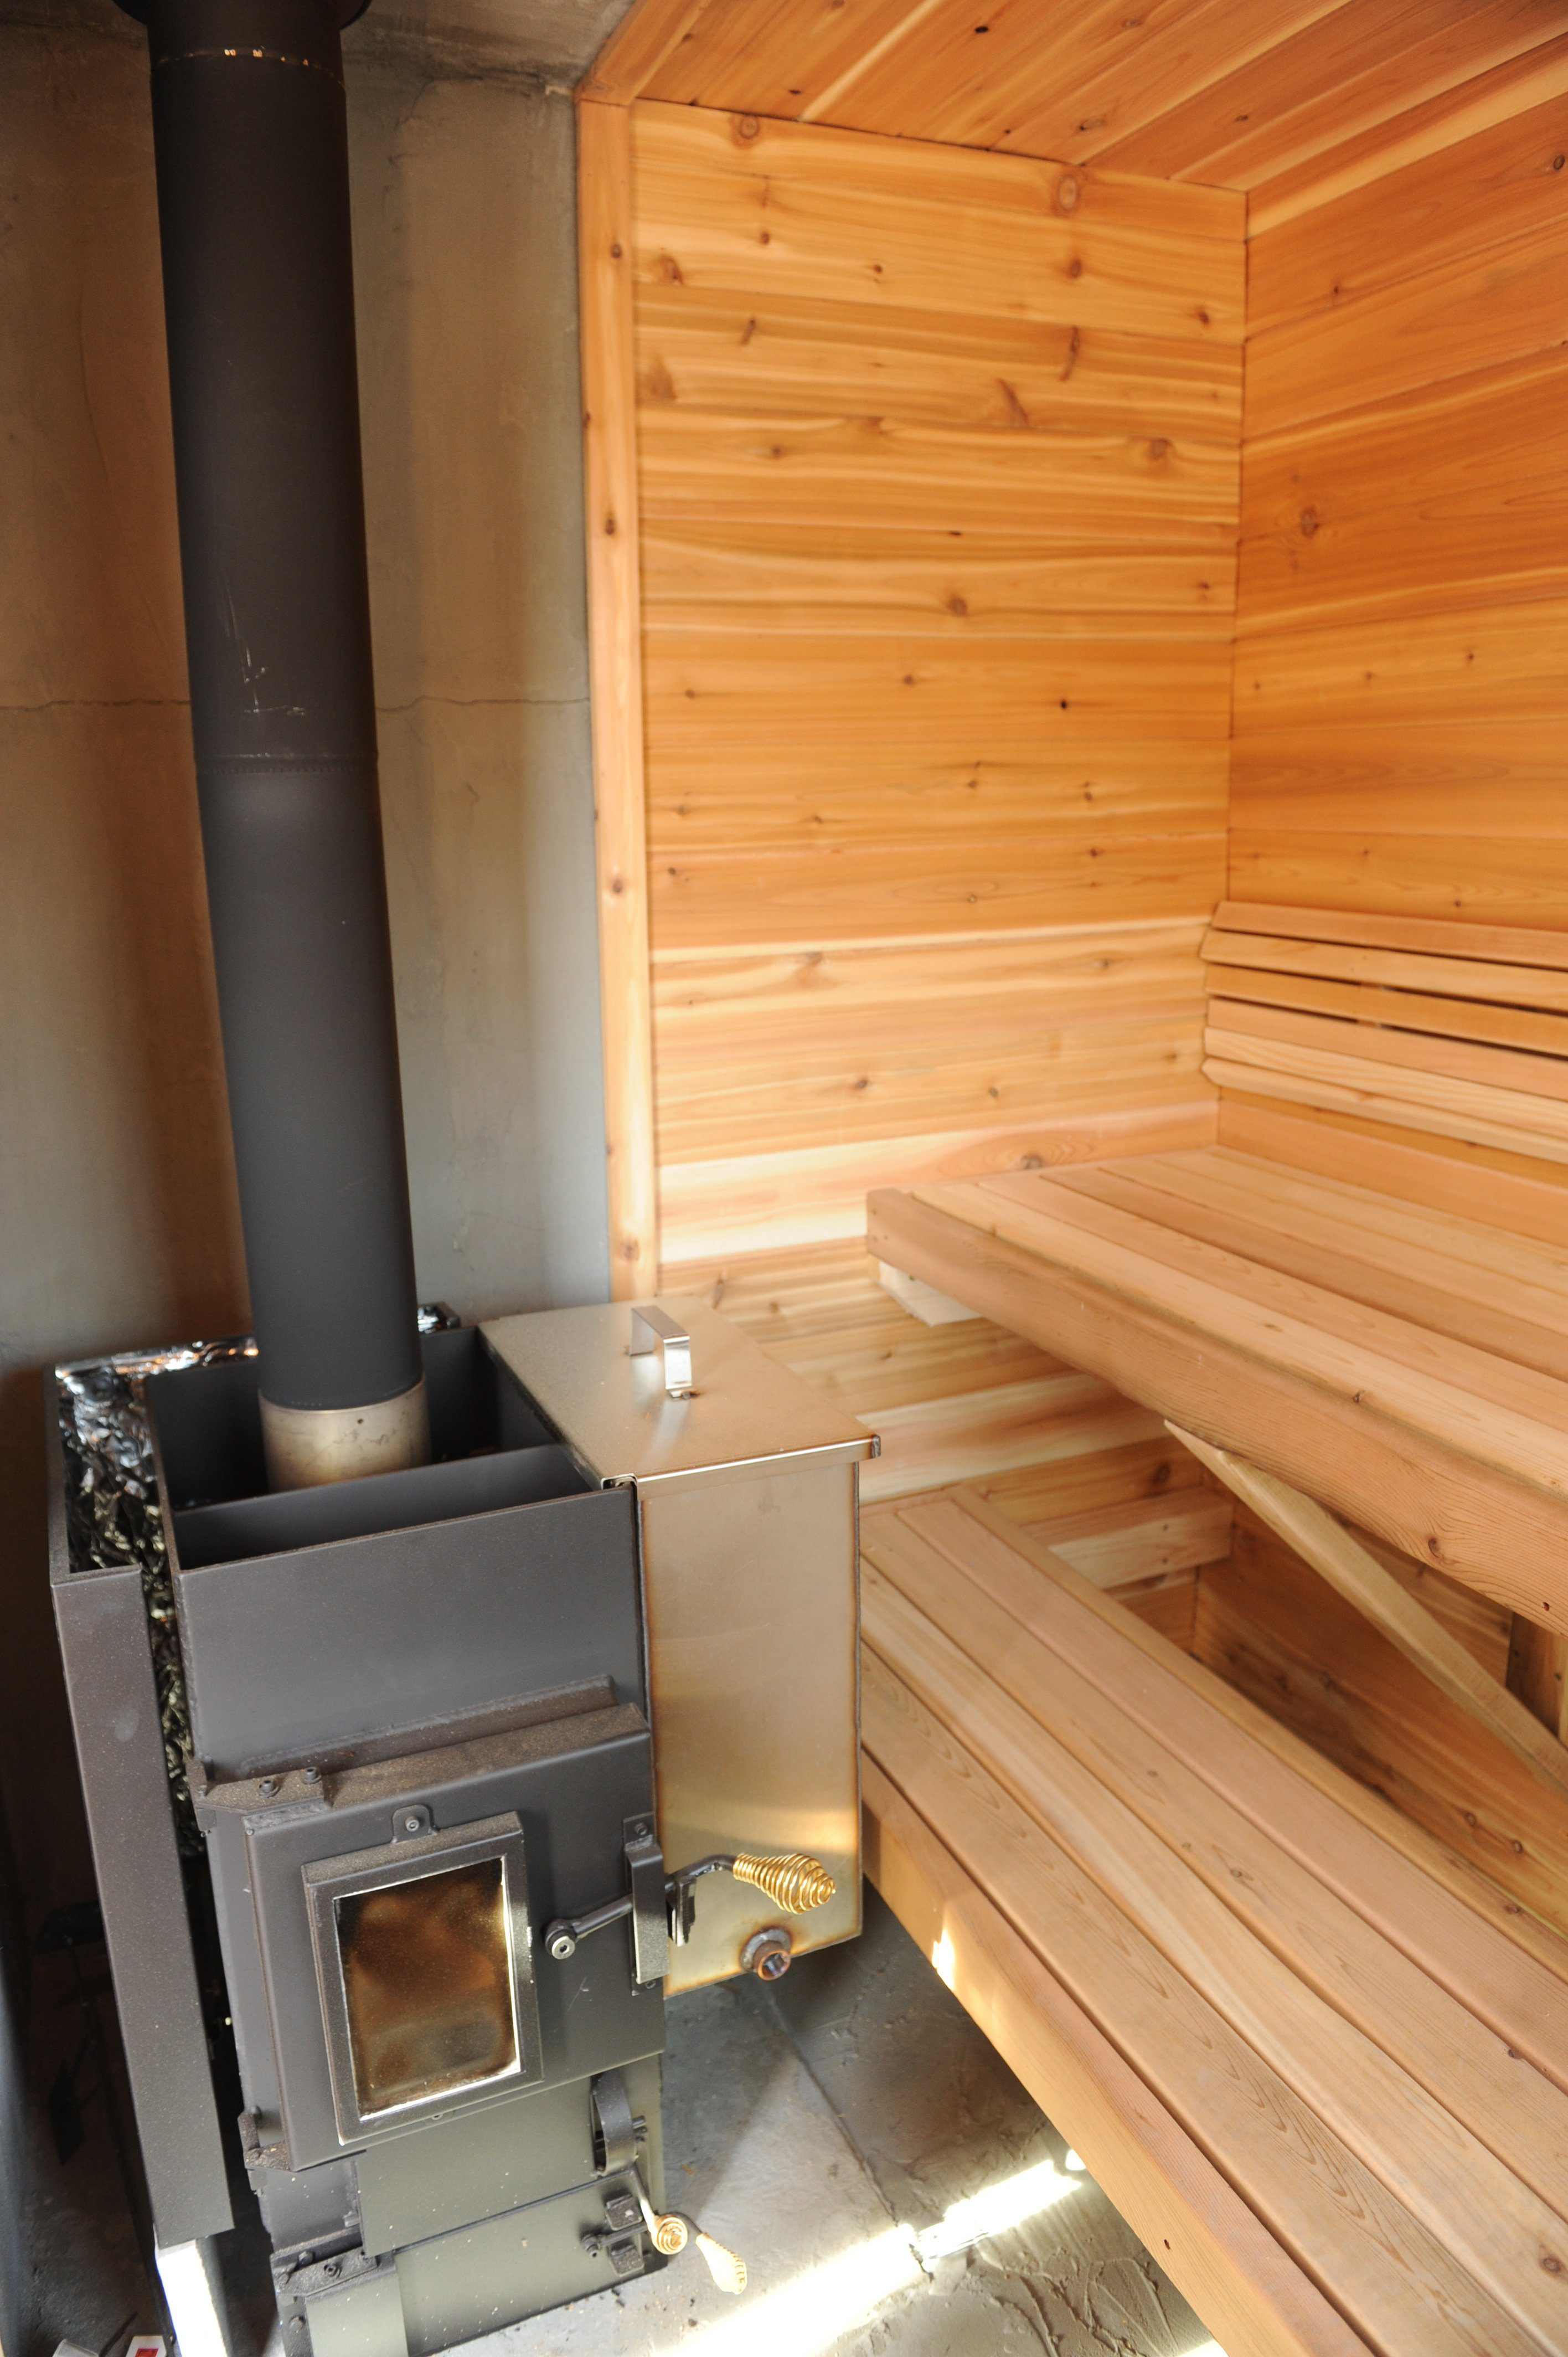 Top 3 sauna building breaches and how to fix them saunatimes for Make your own sauna at home